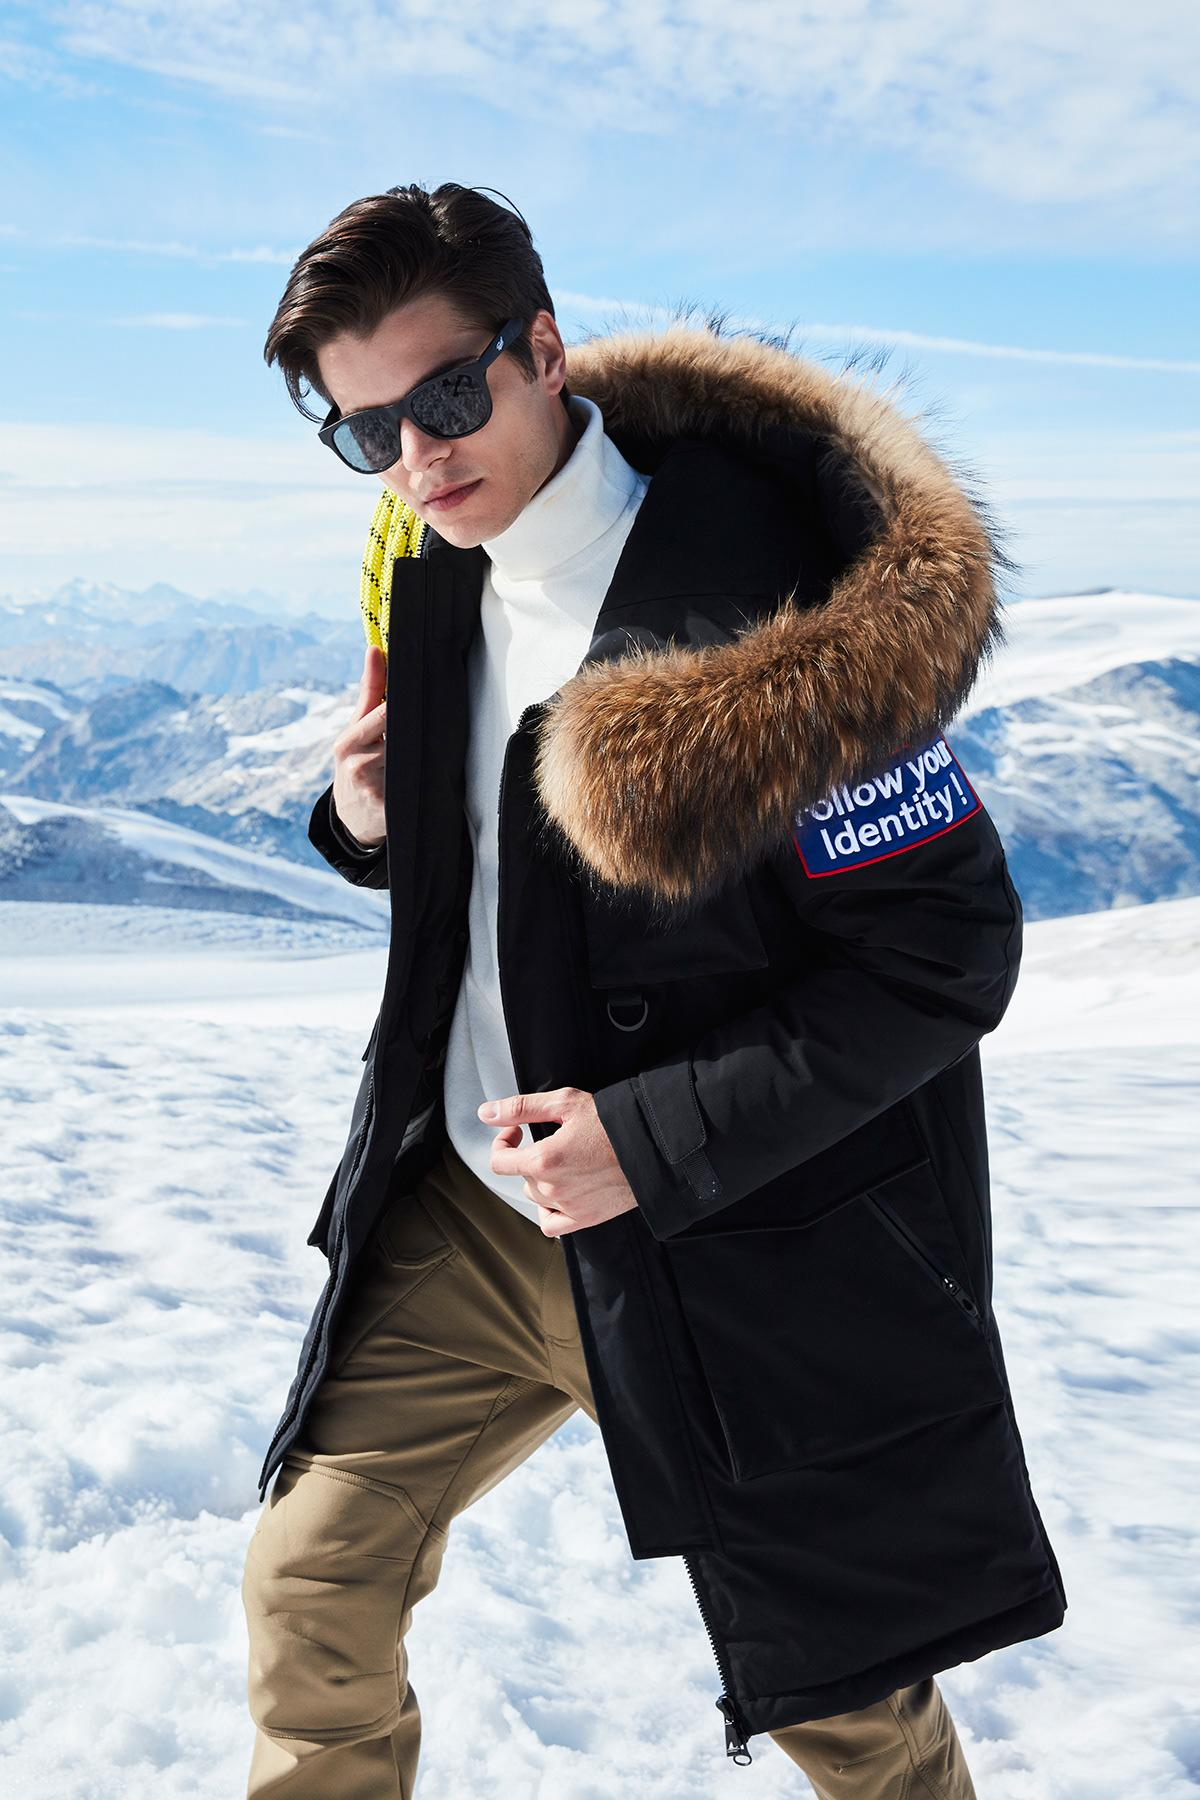 Trendy look for mountains is necessary option to make an impression